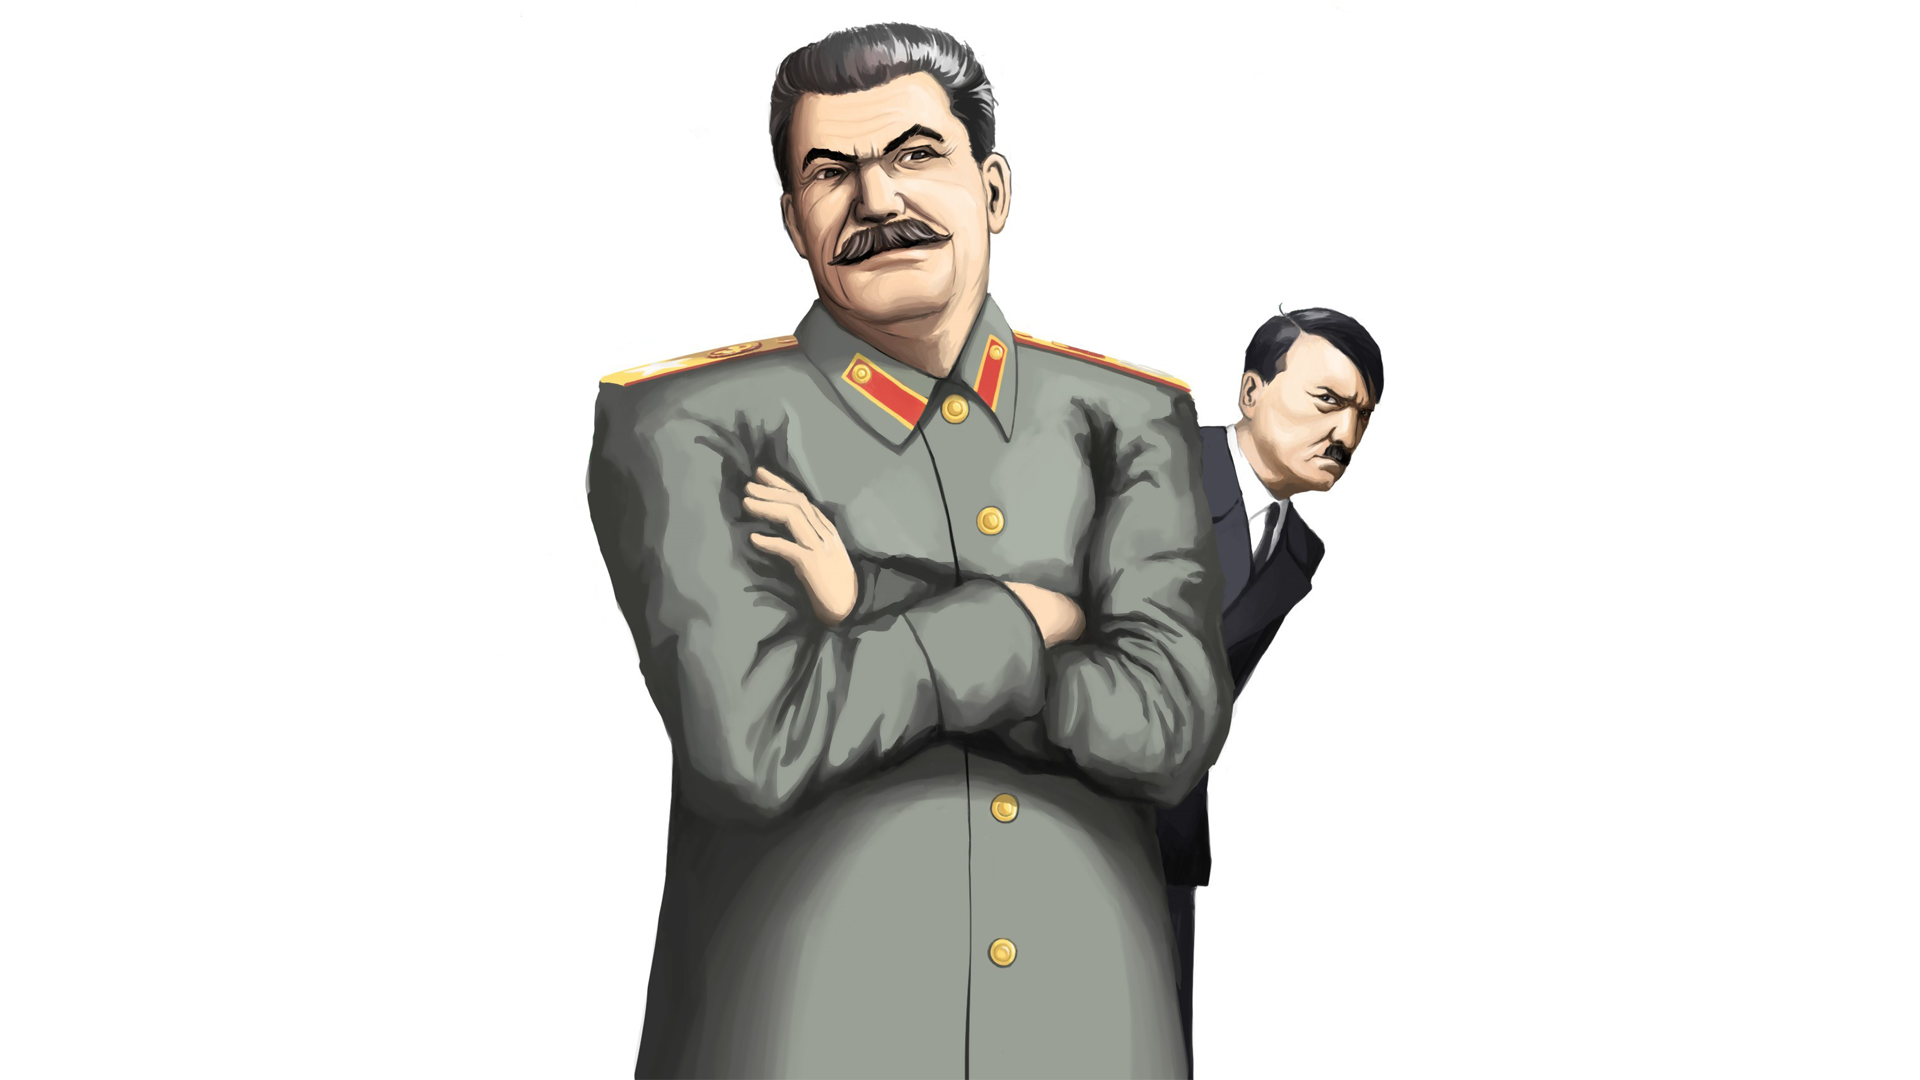 Best Stalin 1920x1080 Wallpaper by Liana Mcclane